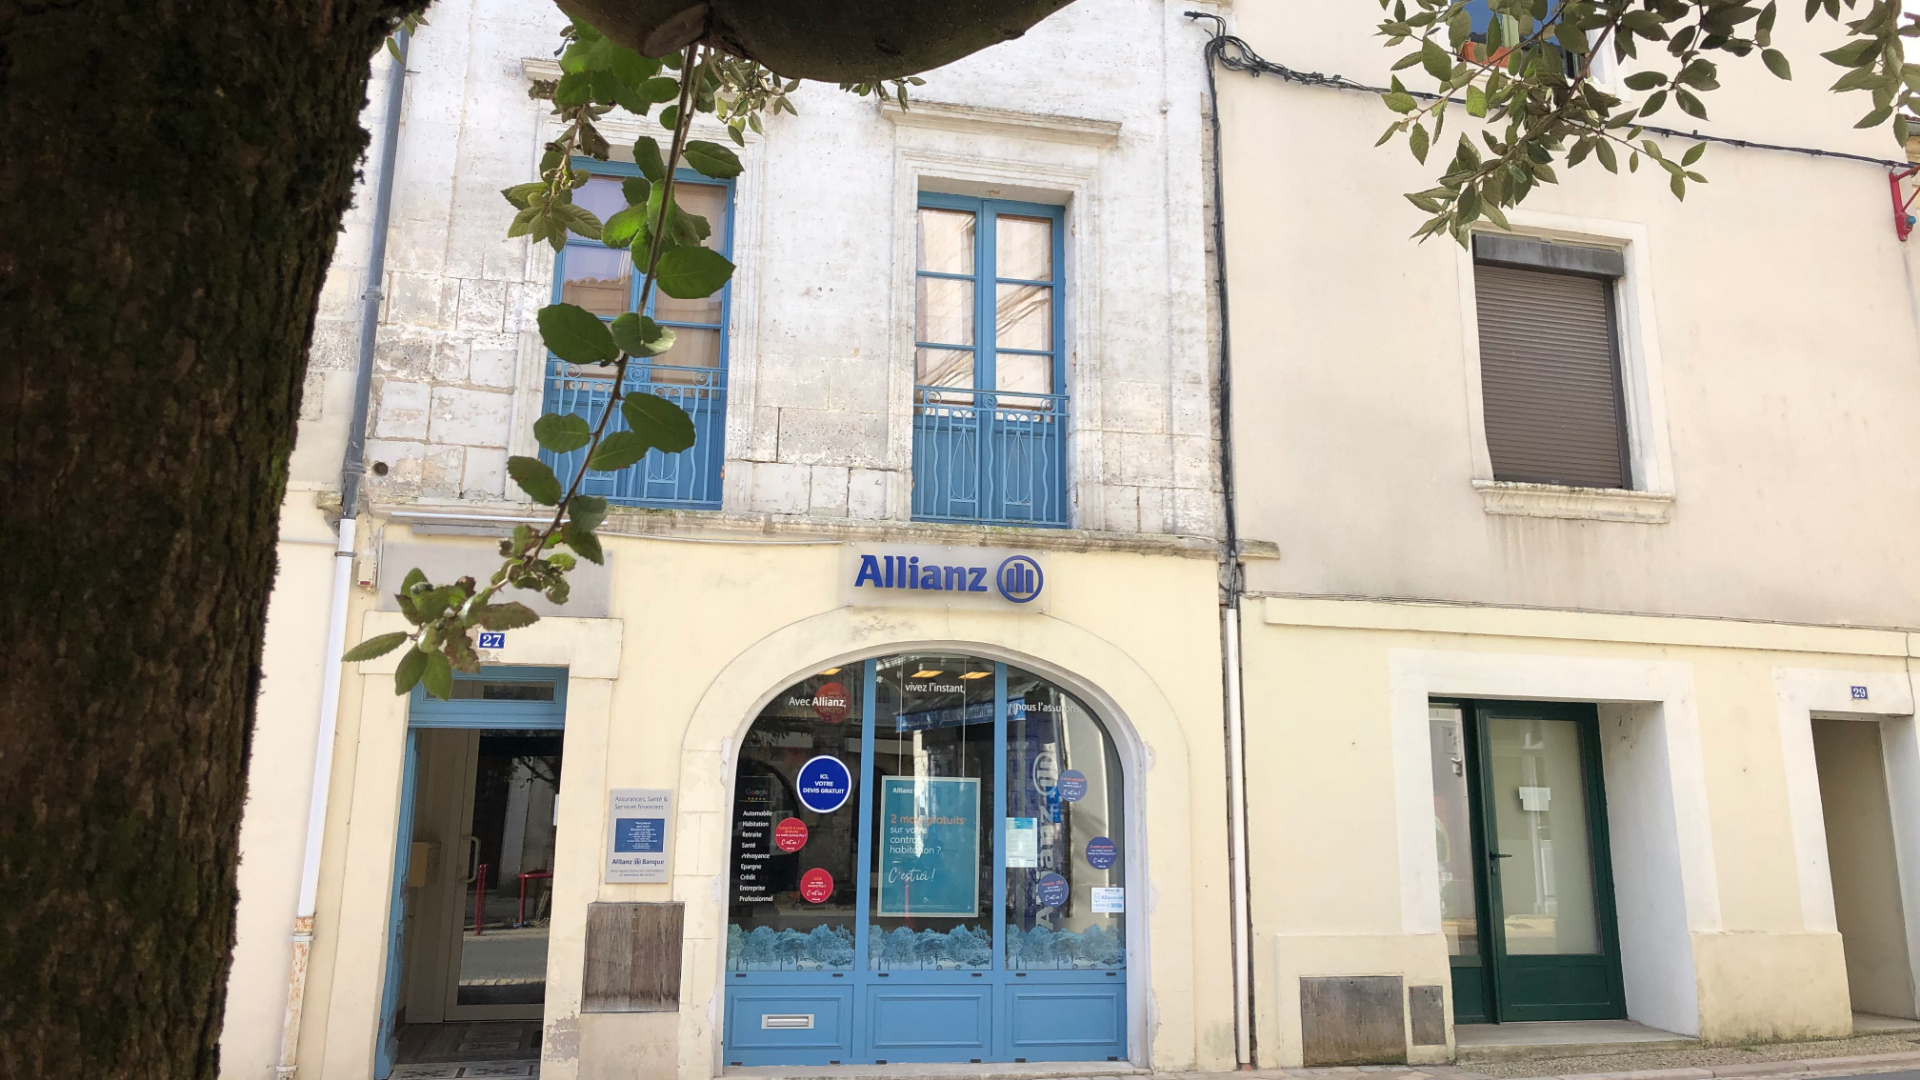 Allianz BRANTOME - Allianz AGENCES